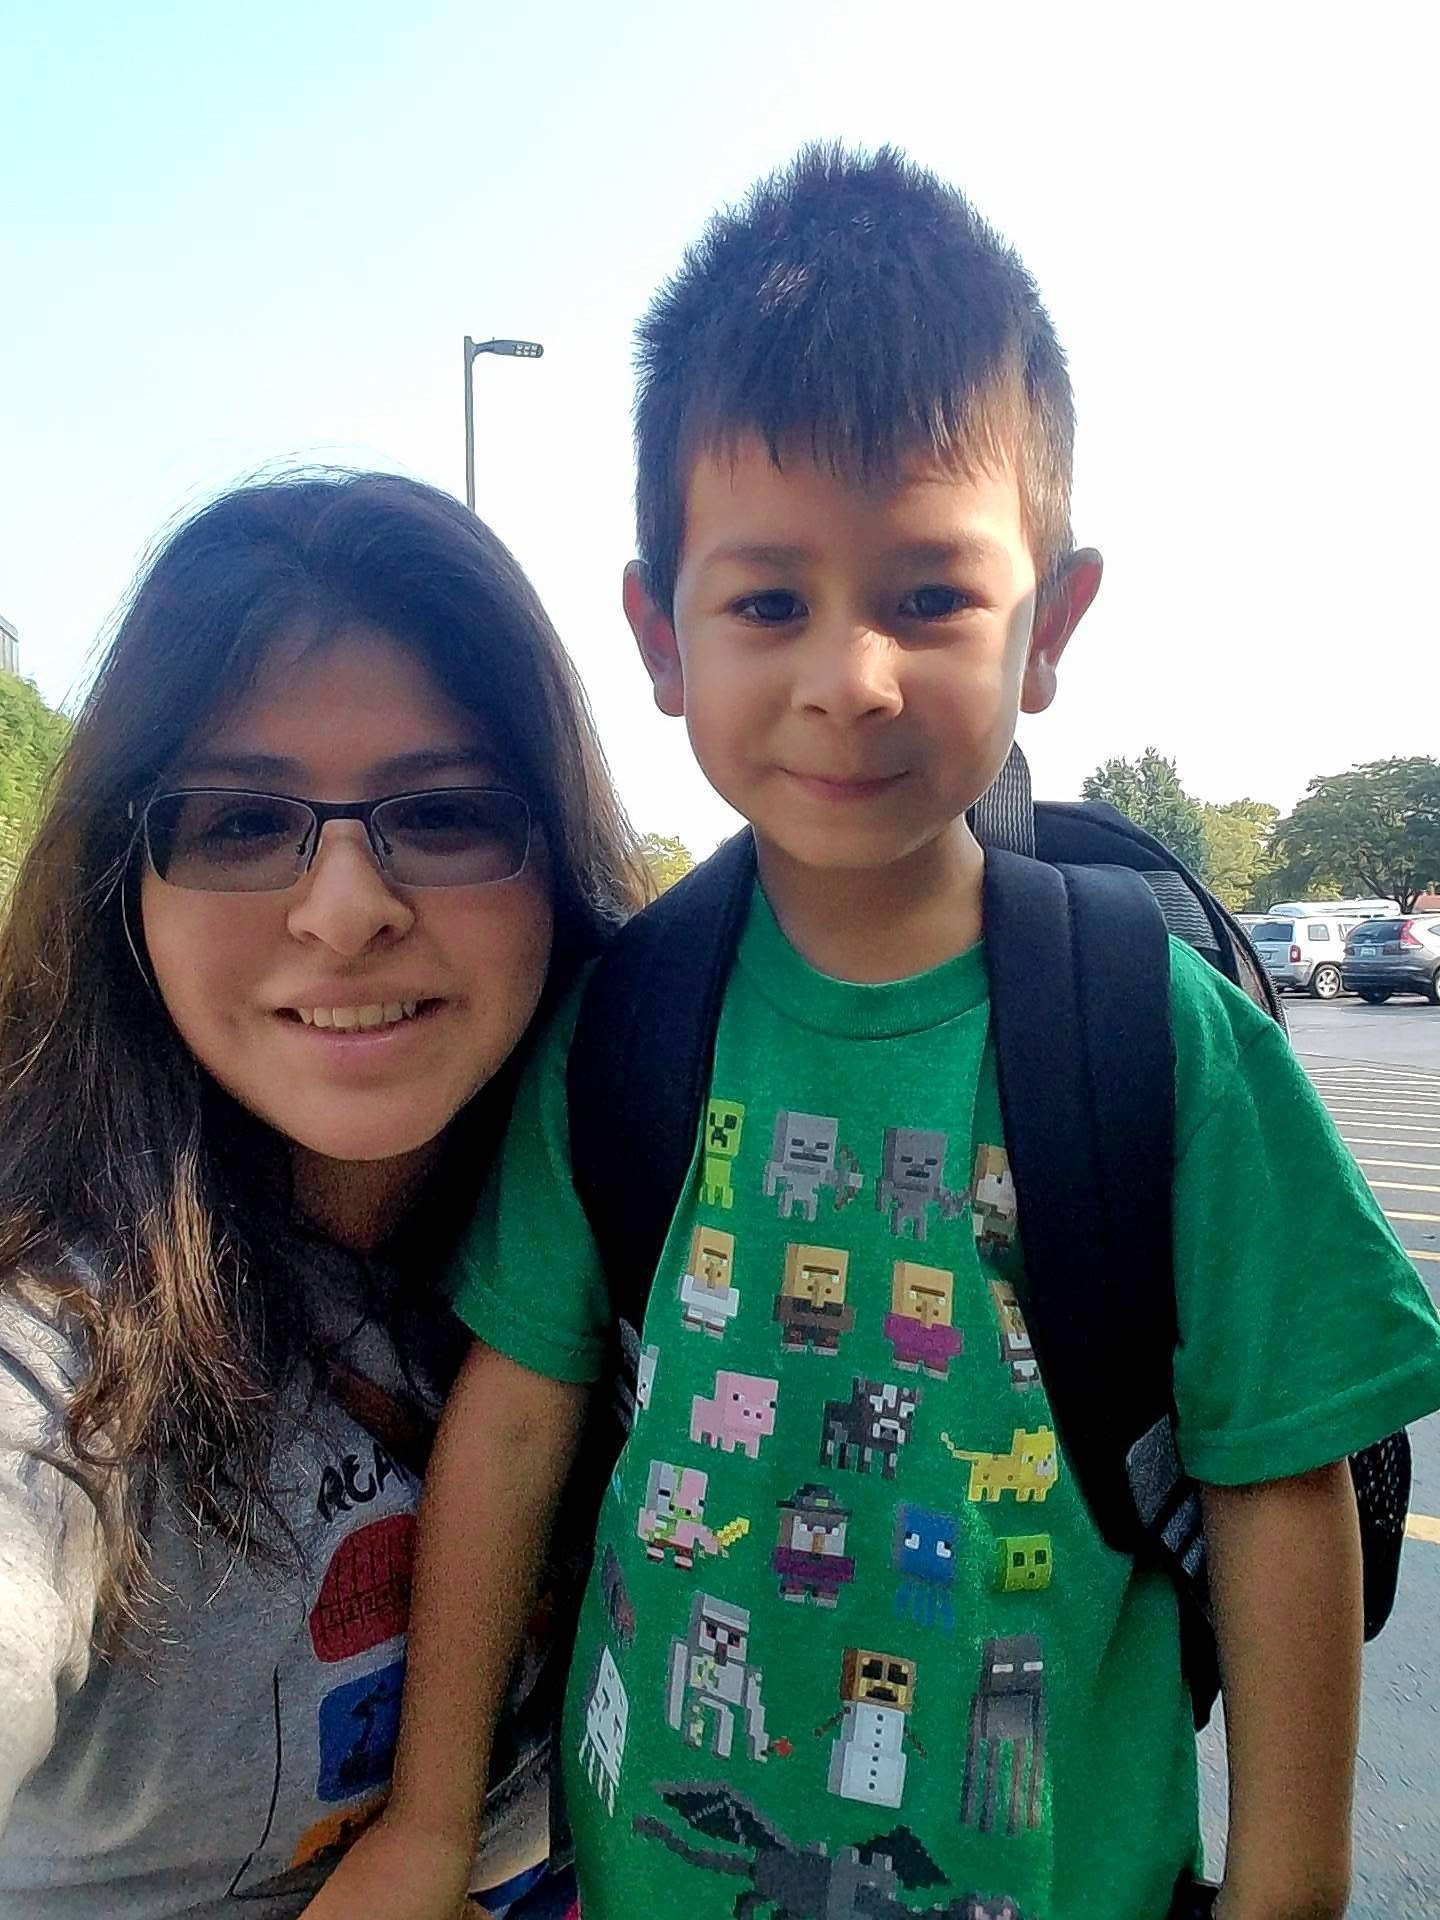 Elk Grove Village mom Rocio Rosales, pictured here with her 4-year-old son, Ethan, collected 10,000 pounds of supplies for Hurricane Harvey victims in her native Texas.